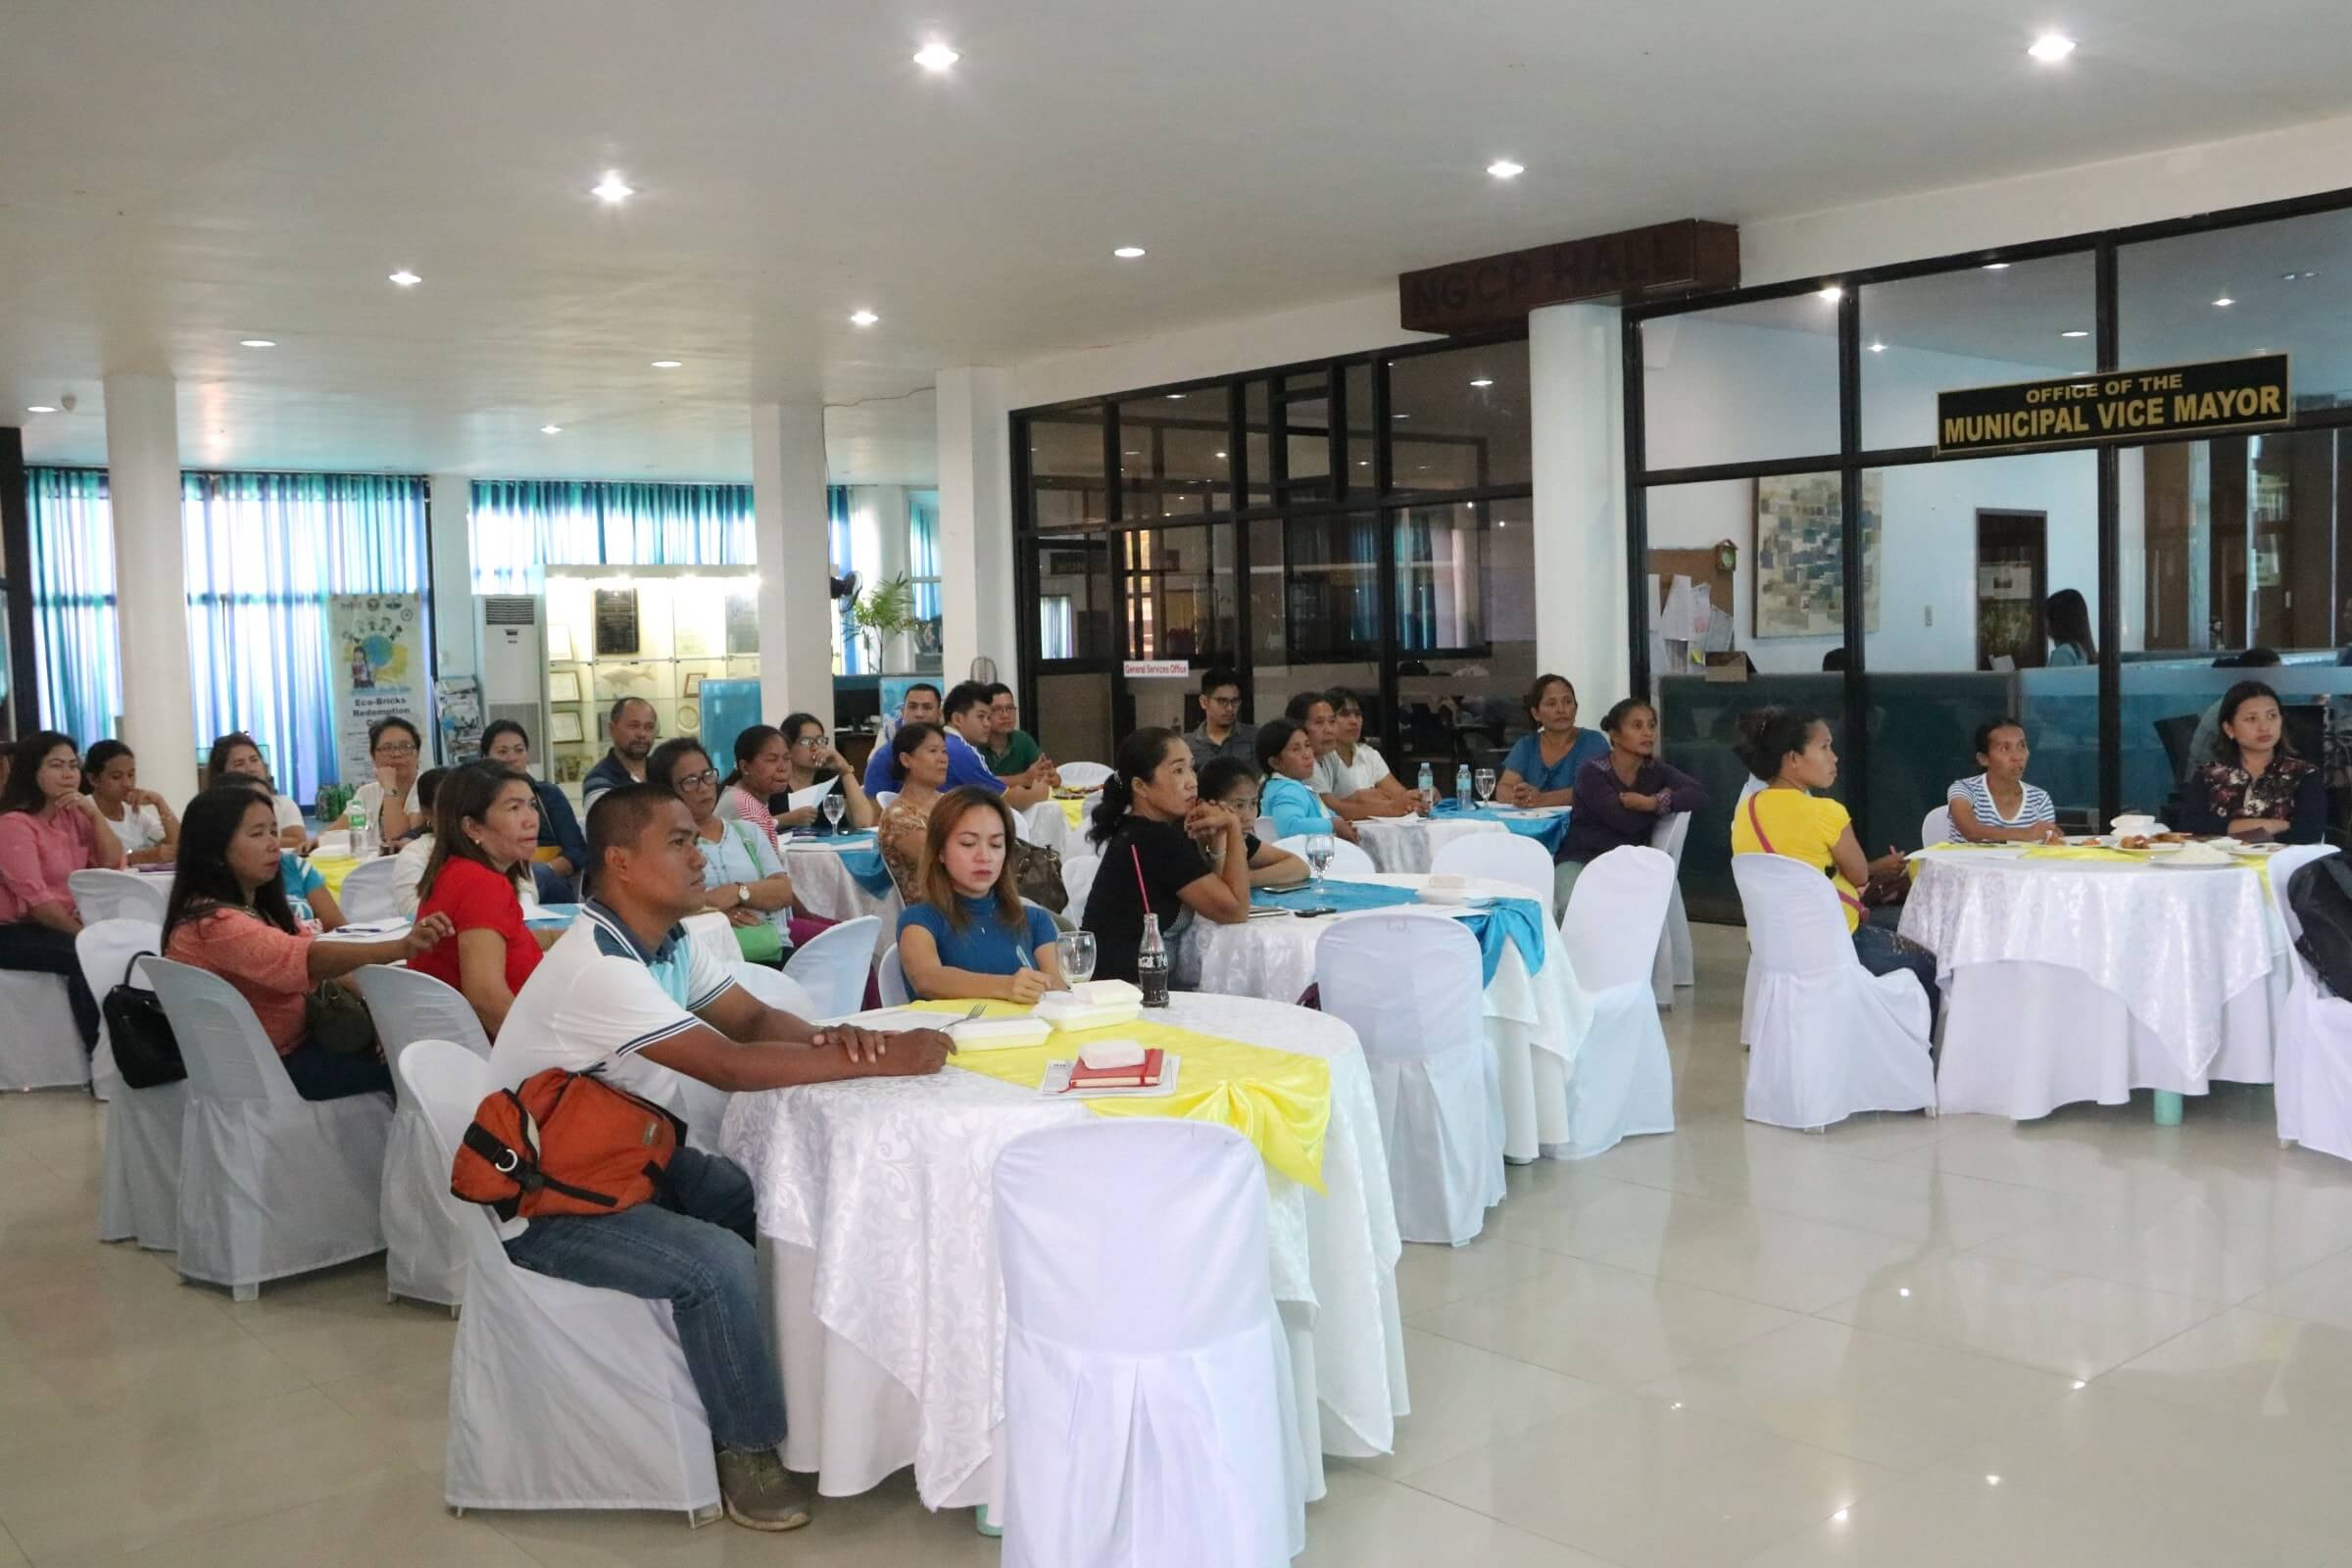 SIMPLIFIED BOOKKEEPING FOR NON-ACCOUNTANTS SEMINAR CONDUCTED BY THE DEPARTMENT OF TRADE & INDUSTRY (DTI) LAST MARCH 16, 2018 @ NGCP HALL